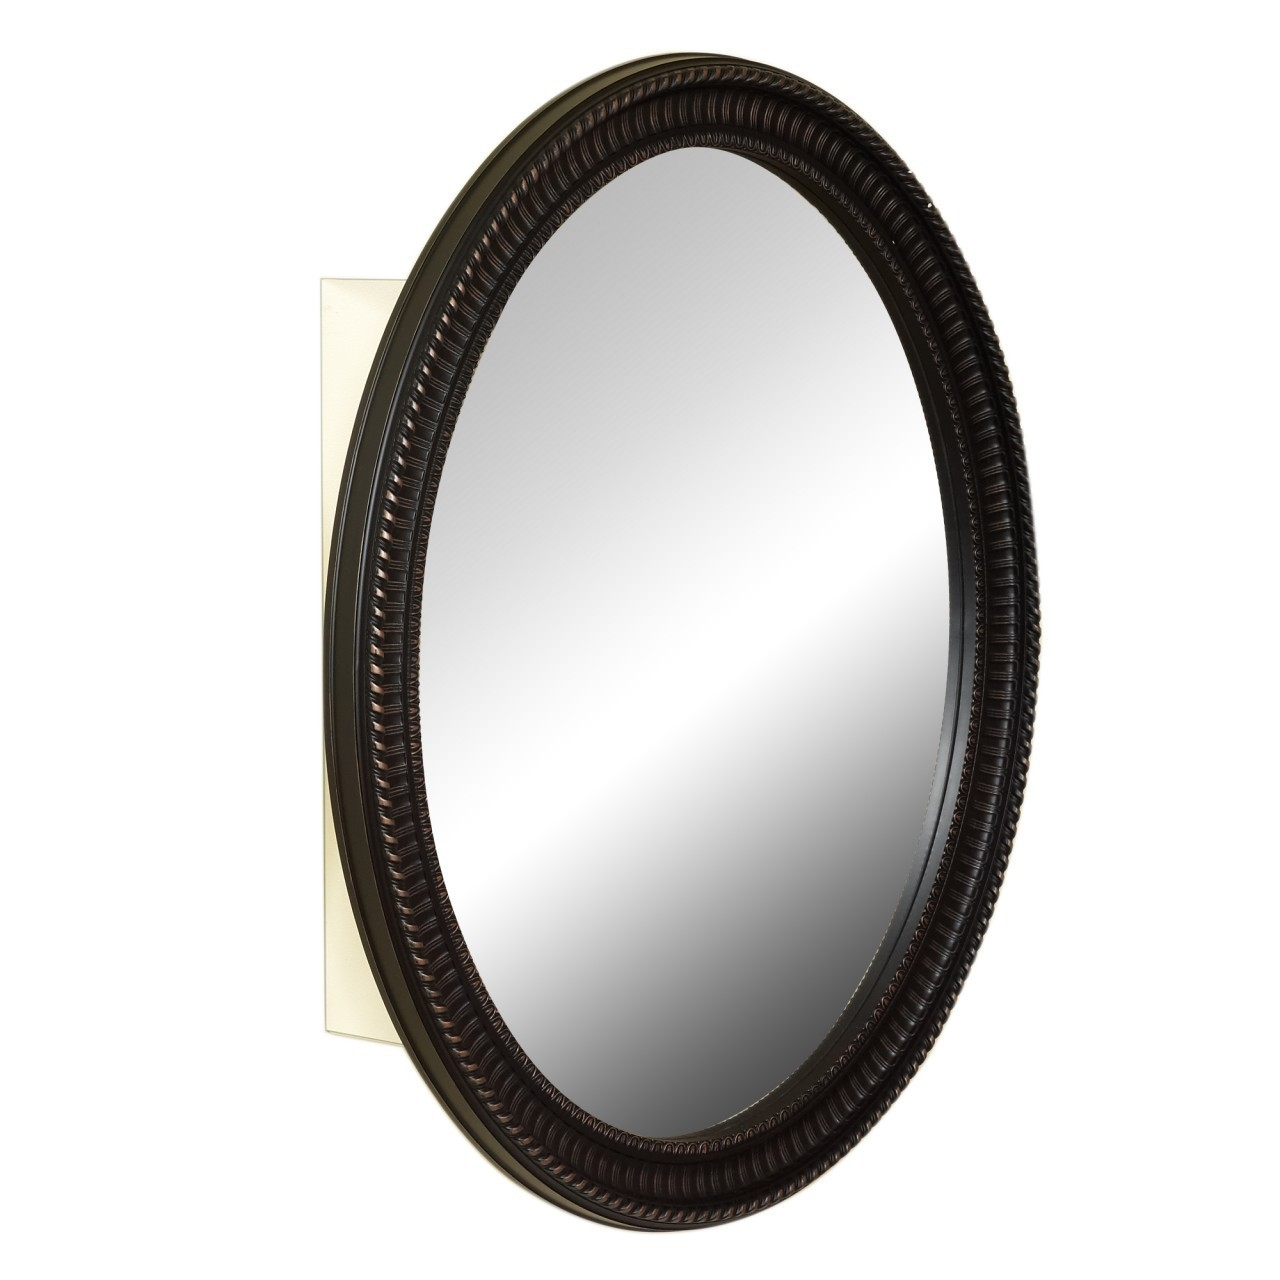 Oval Mirror Medicine Cabinet Zenith Home Corp Zpc With Black Oval Mirror (Image 11 of 15)